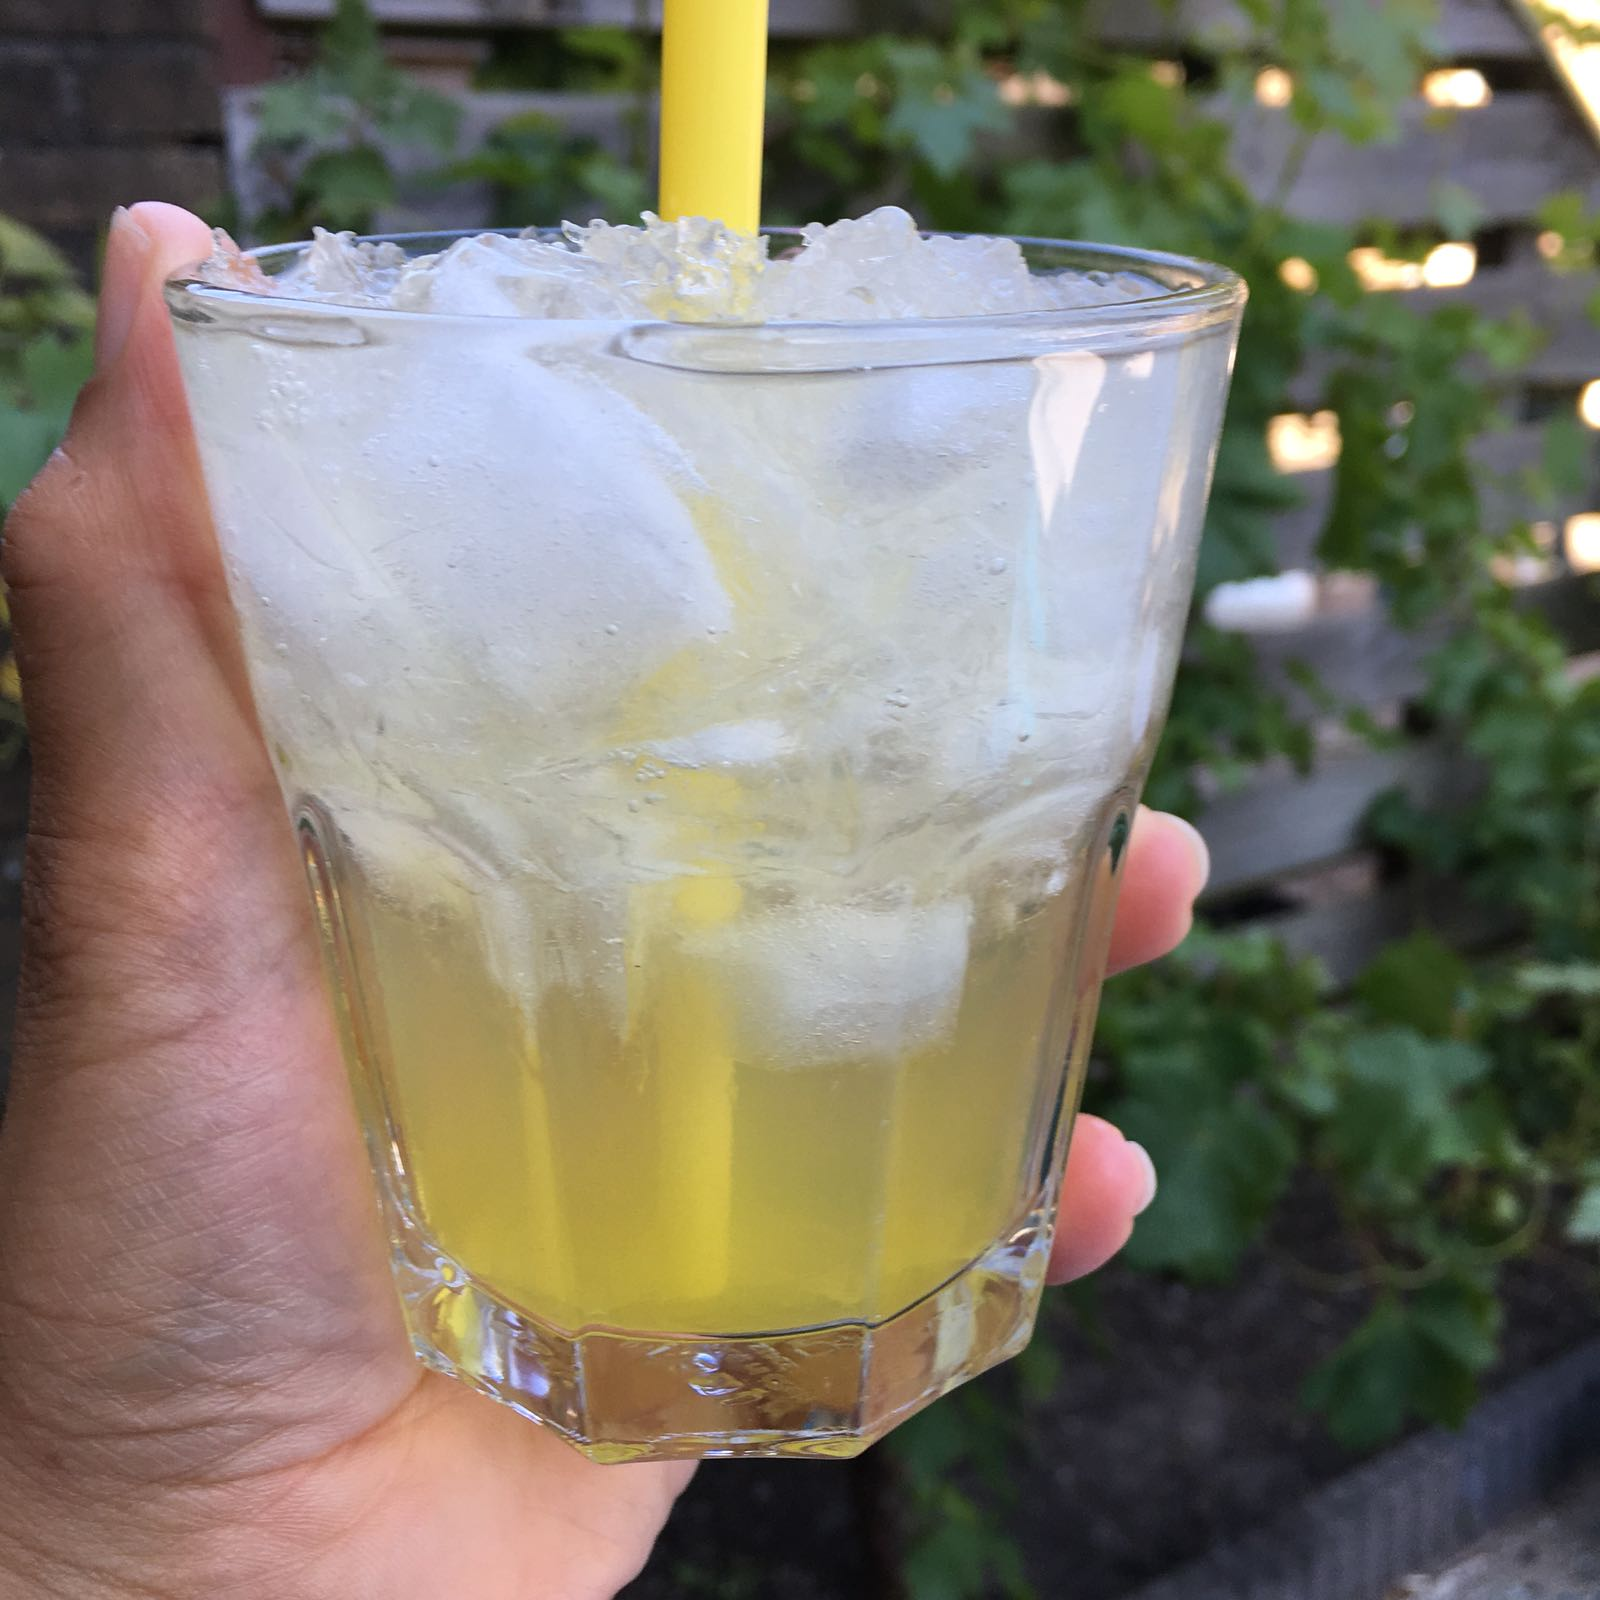 Limoncello-citroen slush puppy